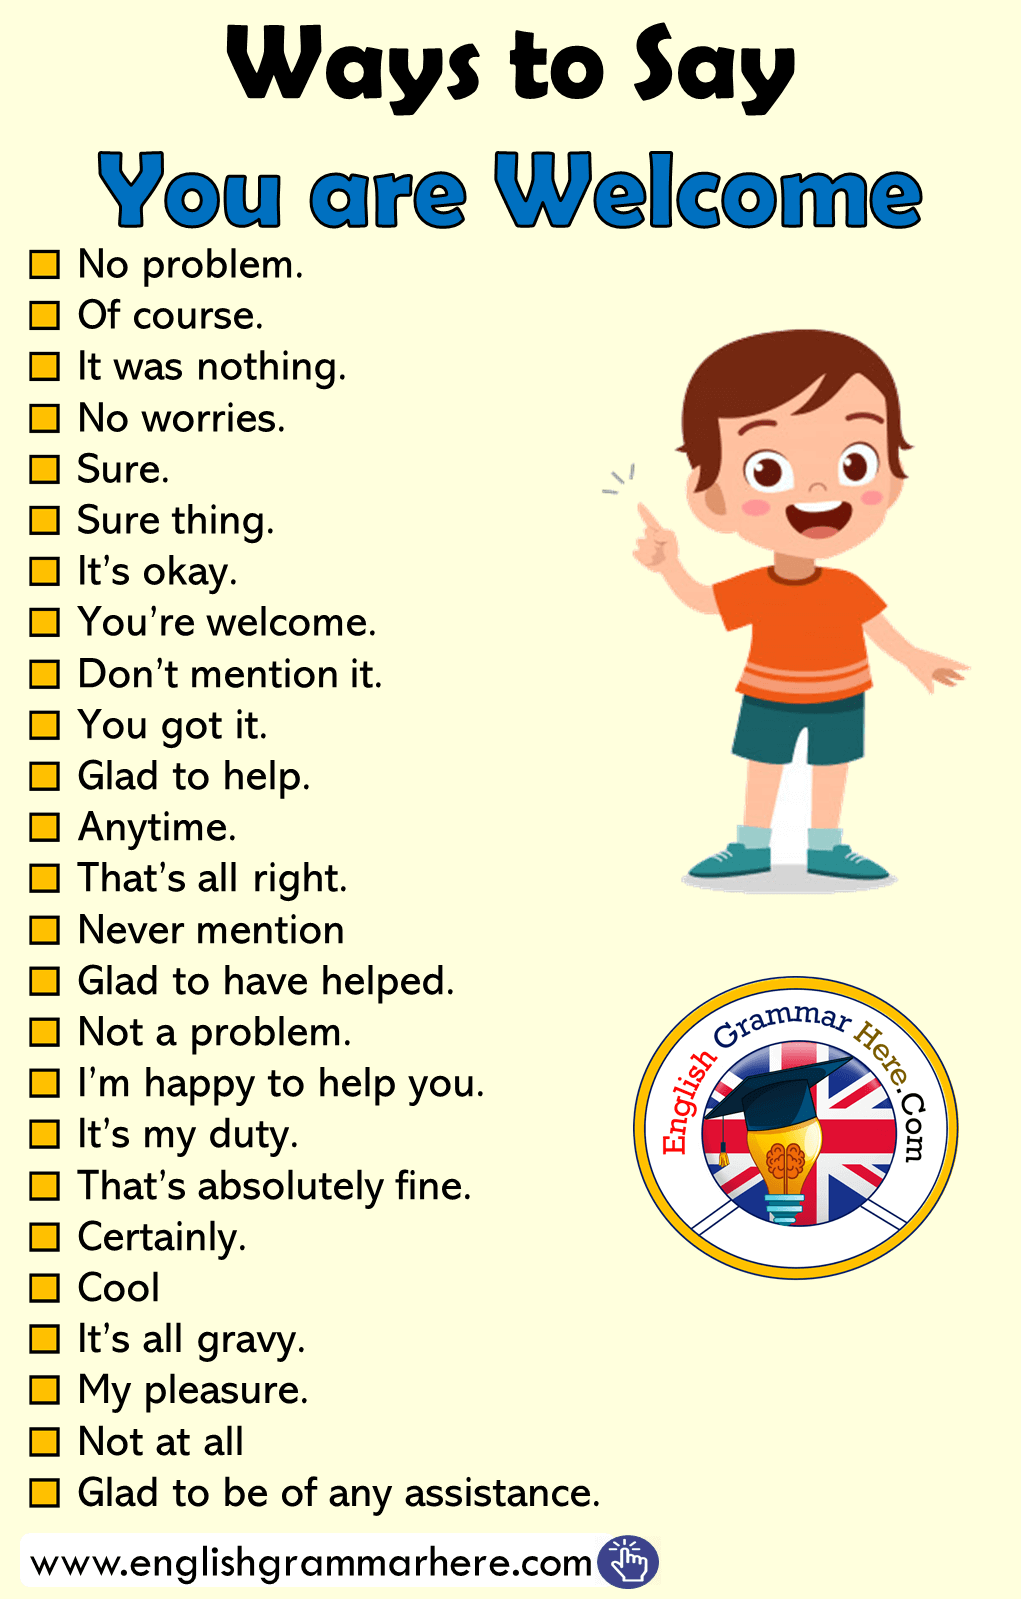 Different Ways to Say You are Welcome in English